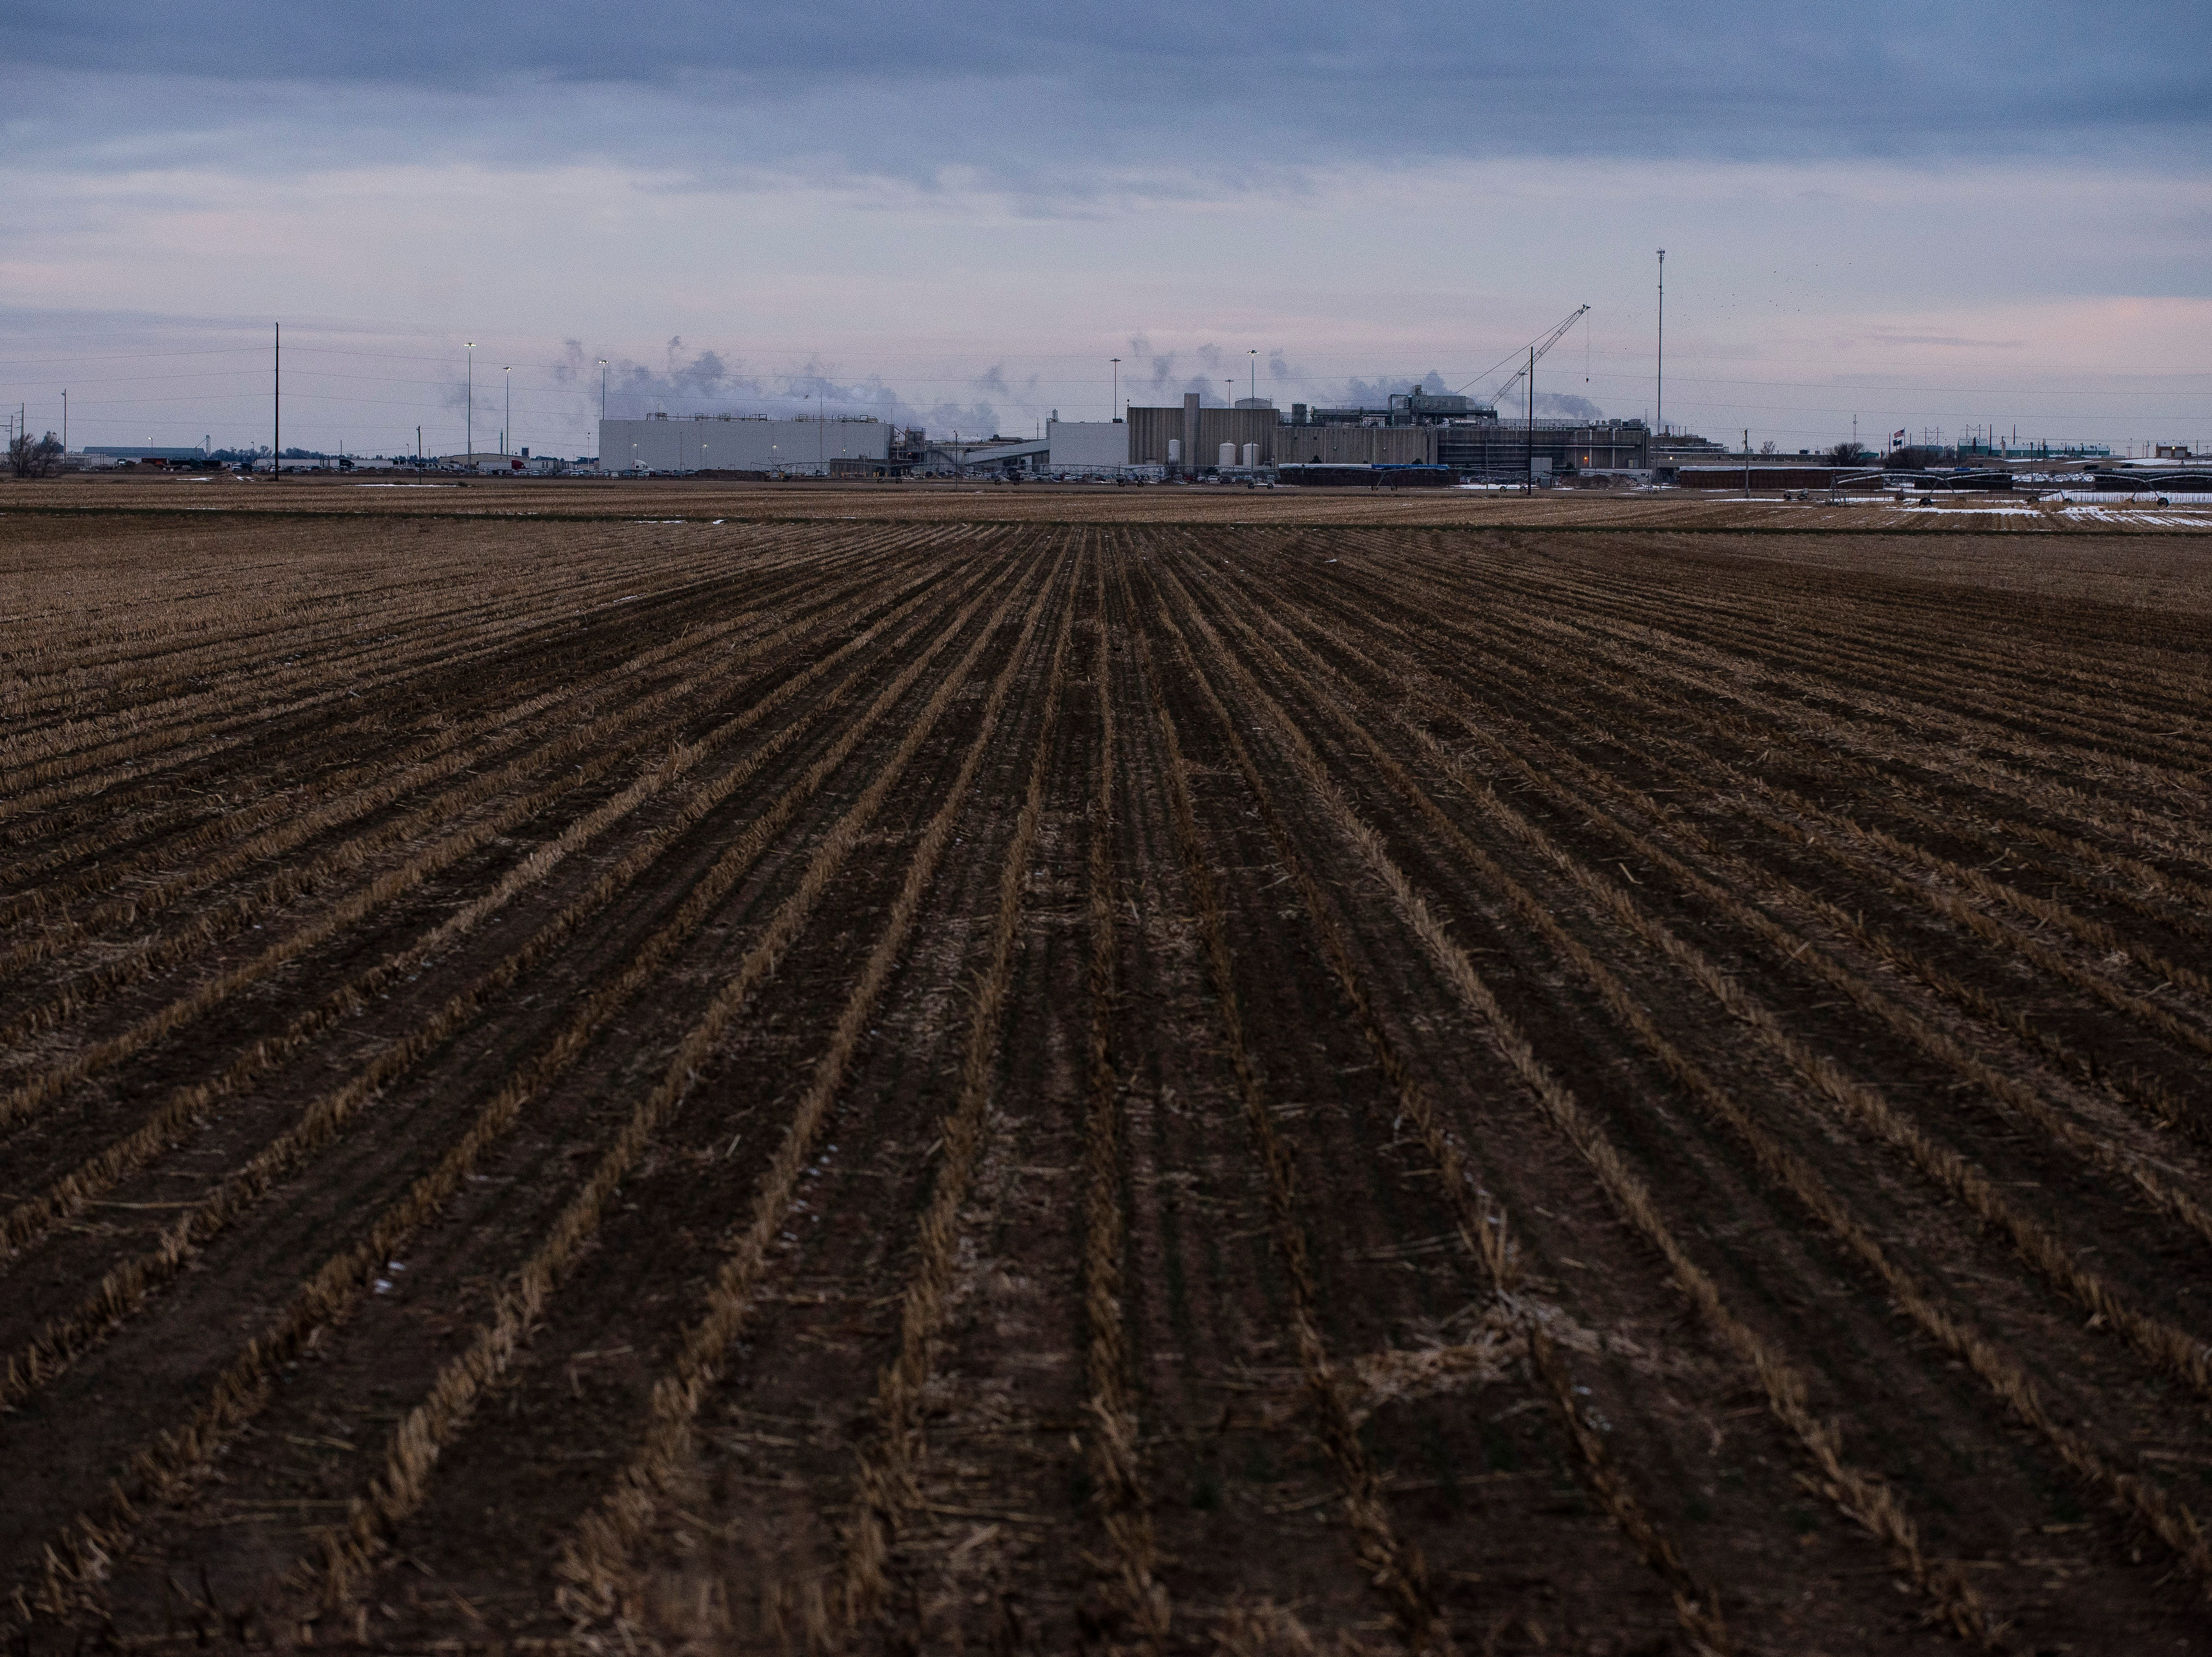 The Tyson Fresh Meats meatpacking plant, where many of the refugees living in nearby Garden City work, sits in the middle of a field Thursday, Jan. 24, 2019. The community's makeup these days is driven primarily by the work at the nearby Tyson Fresh Meats plant, where thousands of cows a day get turned into hamburger, steak and a wide variety of other beef products. Running six days a week, the plant demands a massive workforce to power its two shifts as cows are killed, skinned and sawn into smaller pieces.